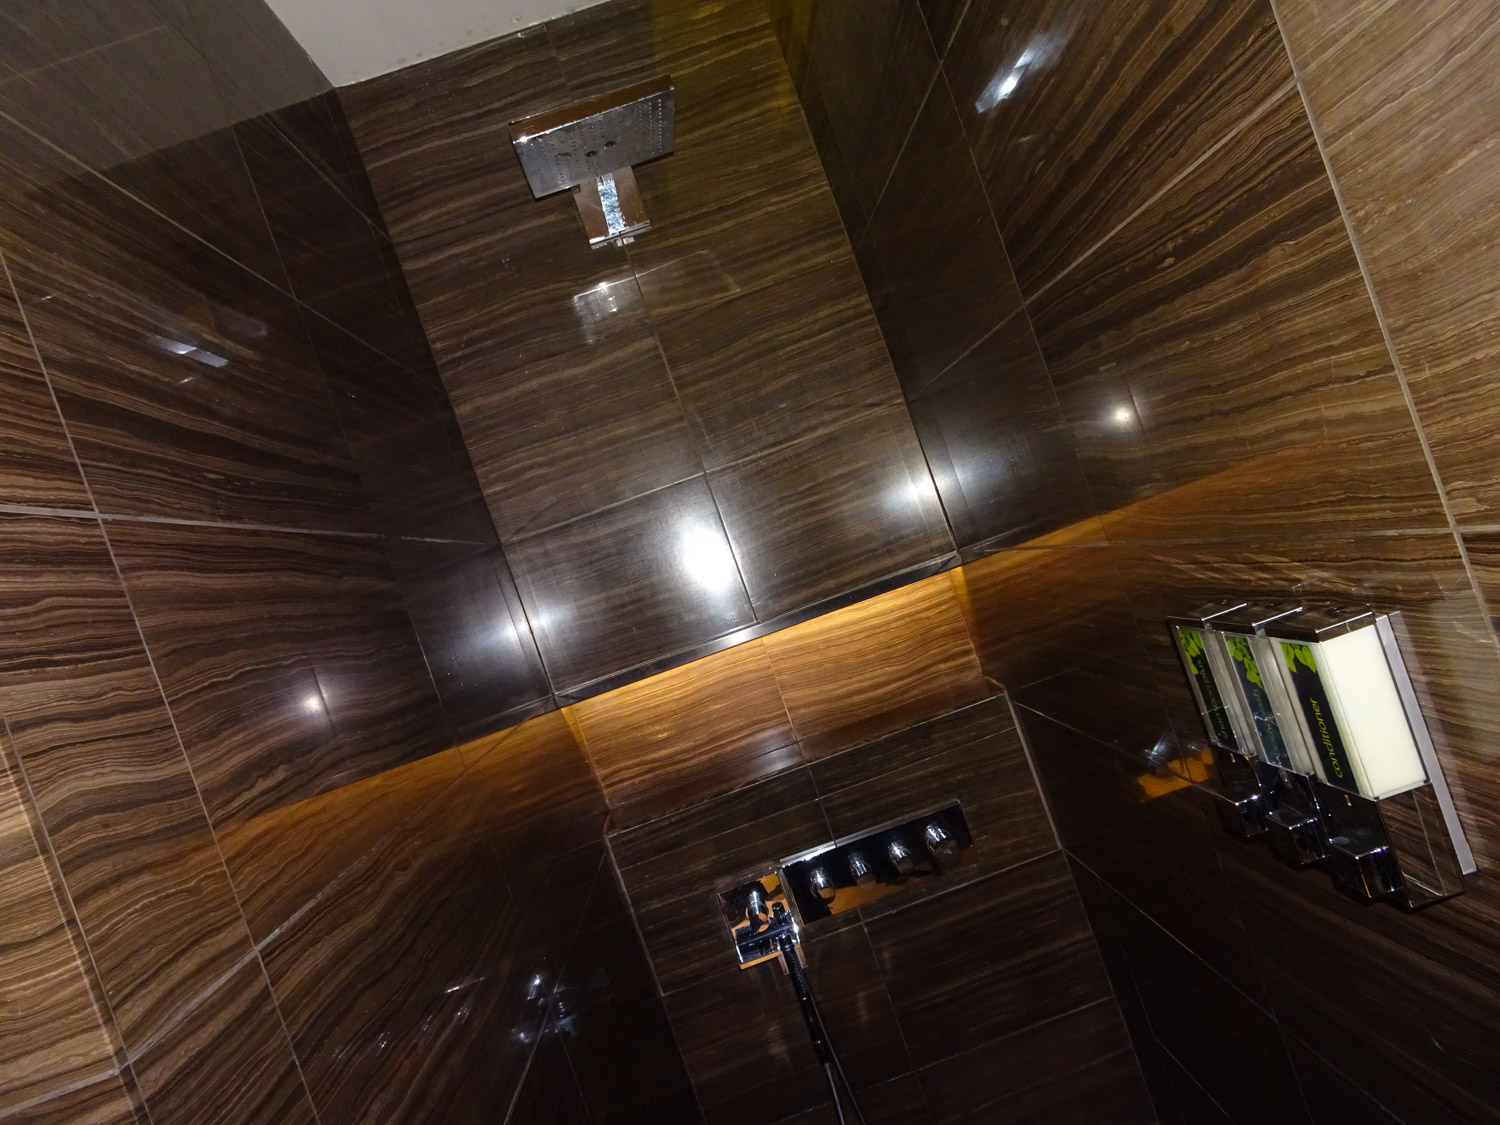 Stone From Floor to Ceiling - Showers - Air Canada Lounge - London Heathrow Photo: Calvin Wood